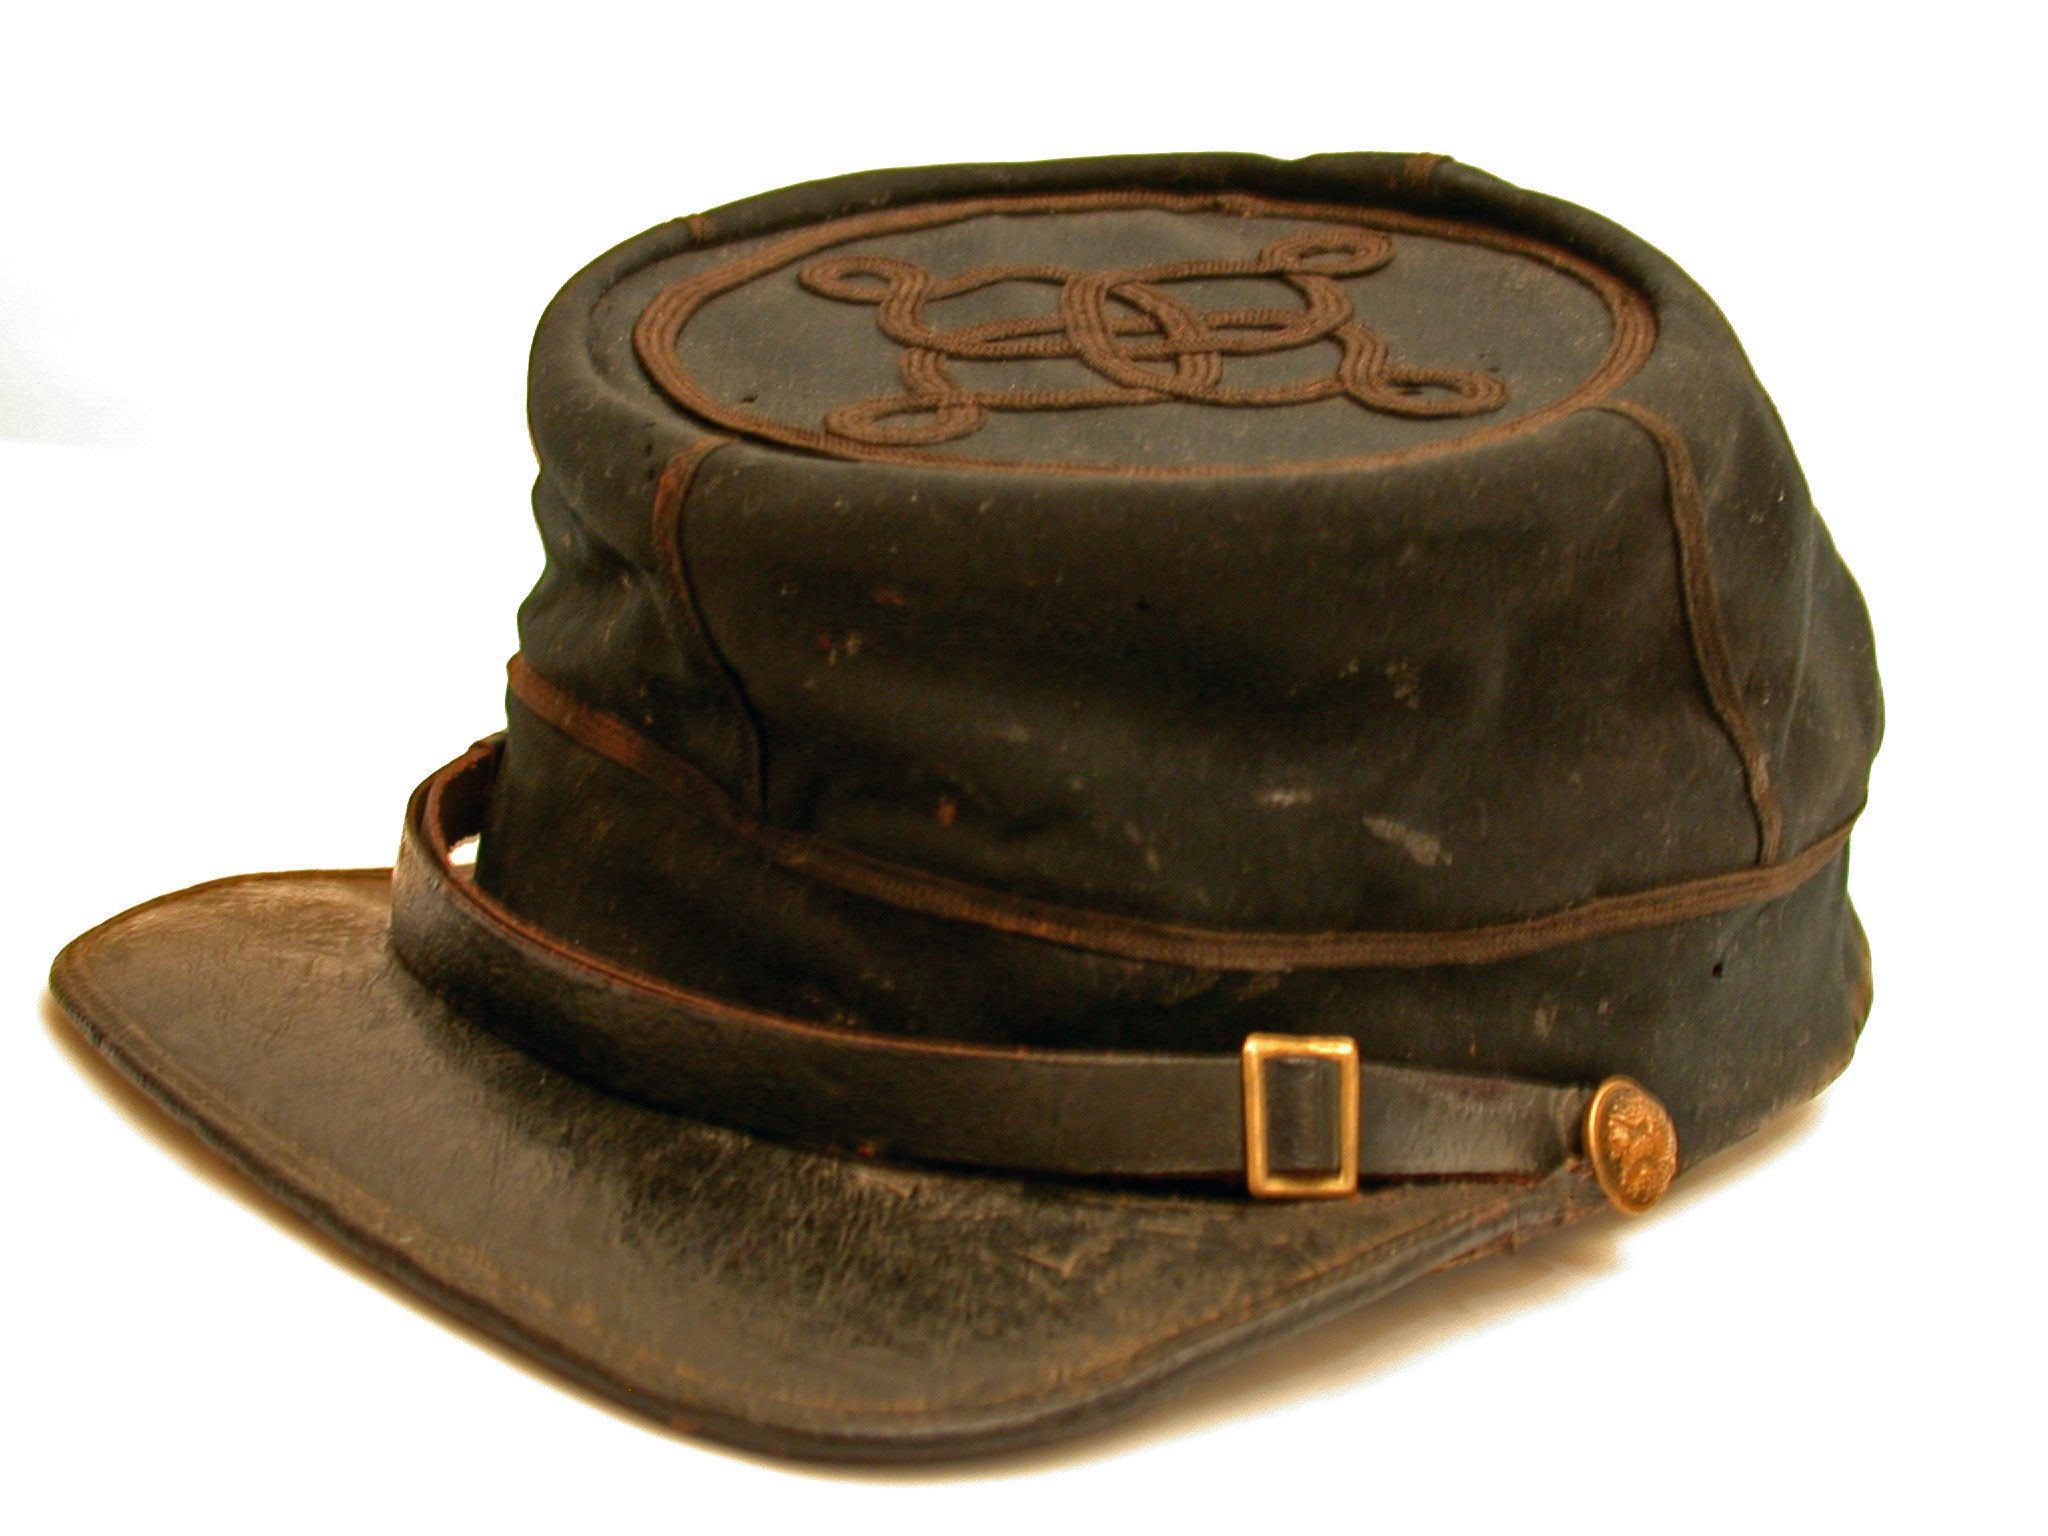 Union Officer s Kepi. One row of braid on top and sides of hat indicates  1st or 2nd Lt. b6cf460e81f1